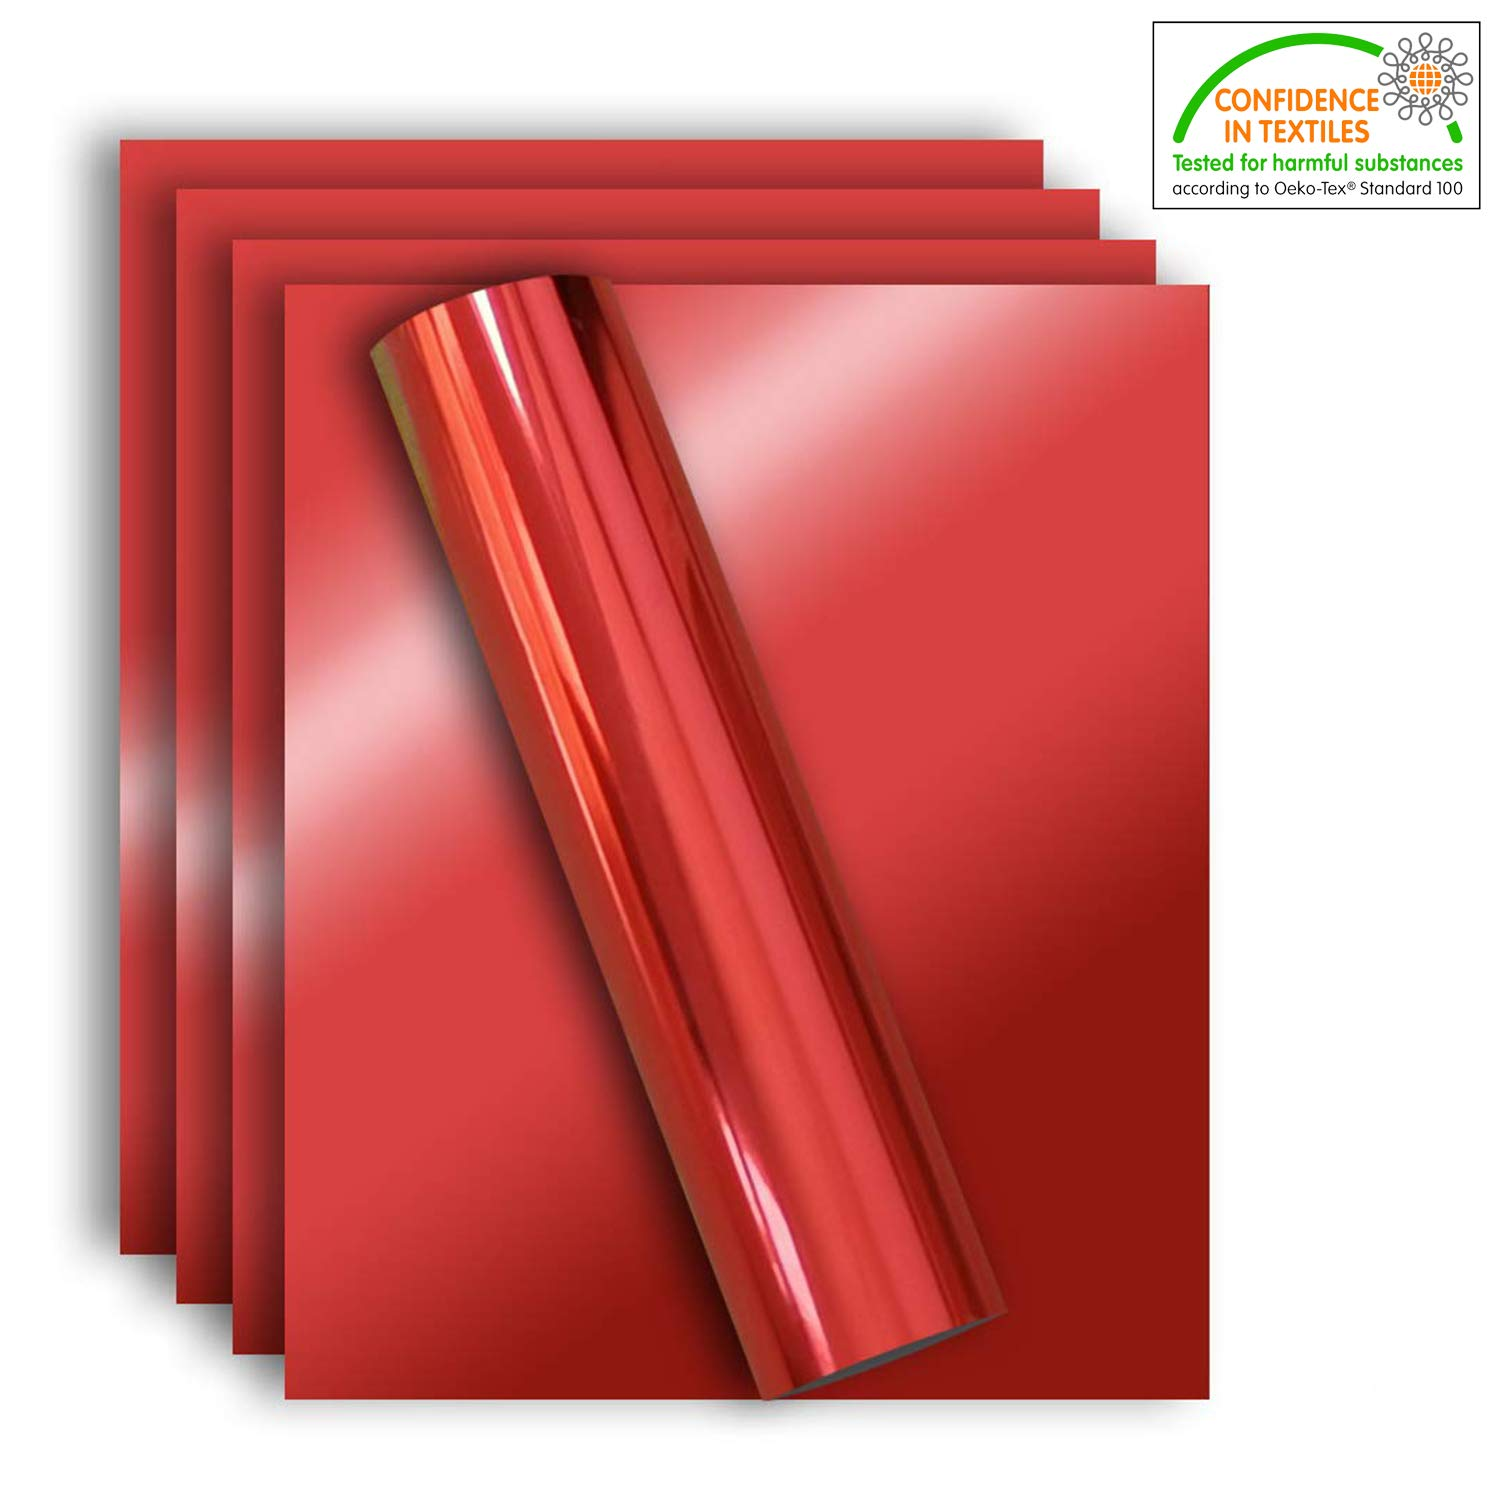 Stretchable Metallic Heat Transfer Vinyl Red Foil, Iron On HTV Bundle for DIY Your Own Christmas Clothes, 12x10 Inch, Pack of 5, Eco-Friendly